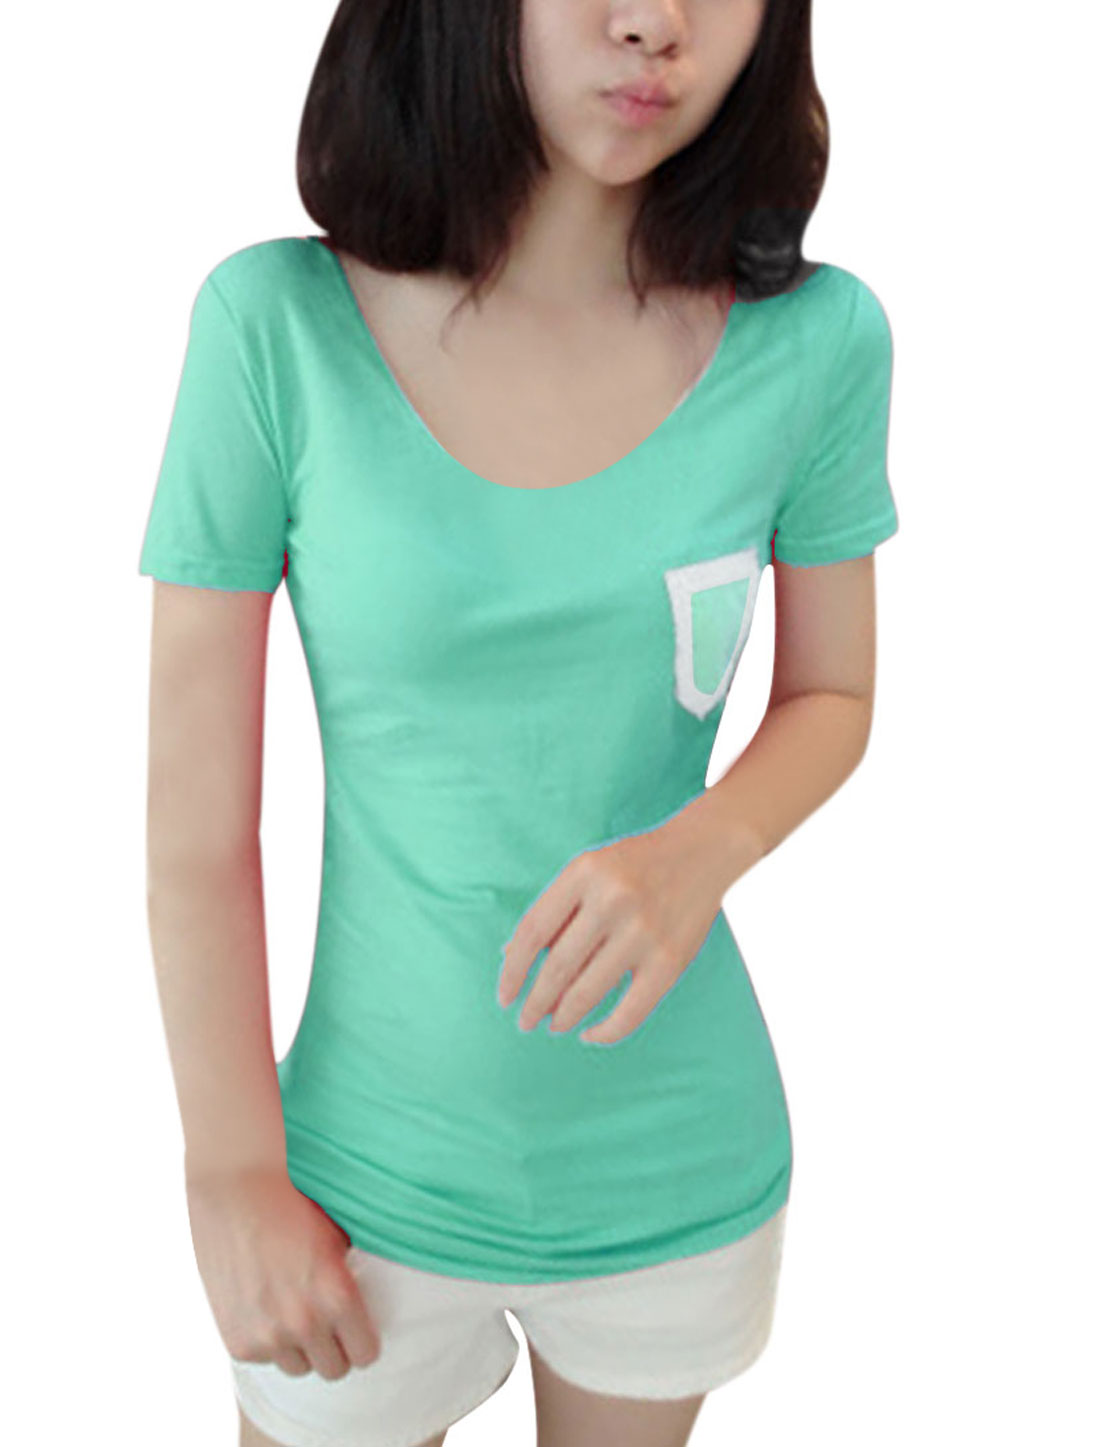 Lady Green Crochet Round Neck Short Sleeve Chest Pocket Tee Shirt XS